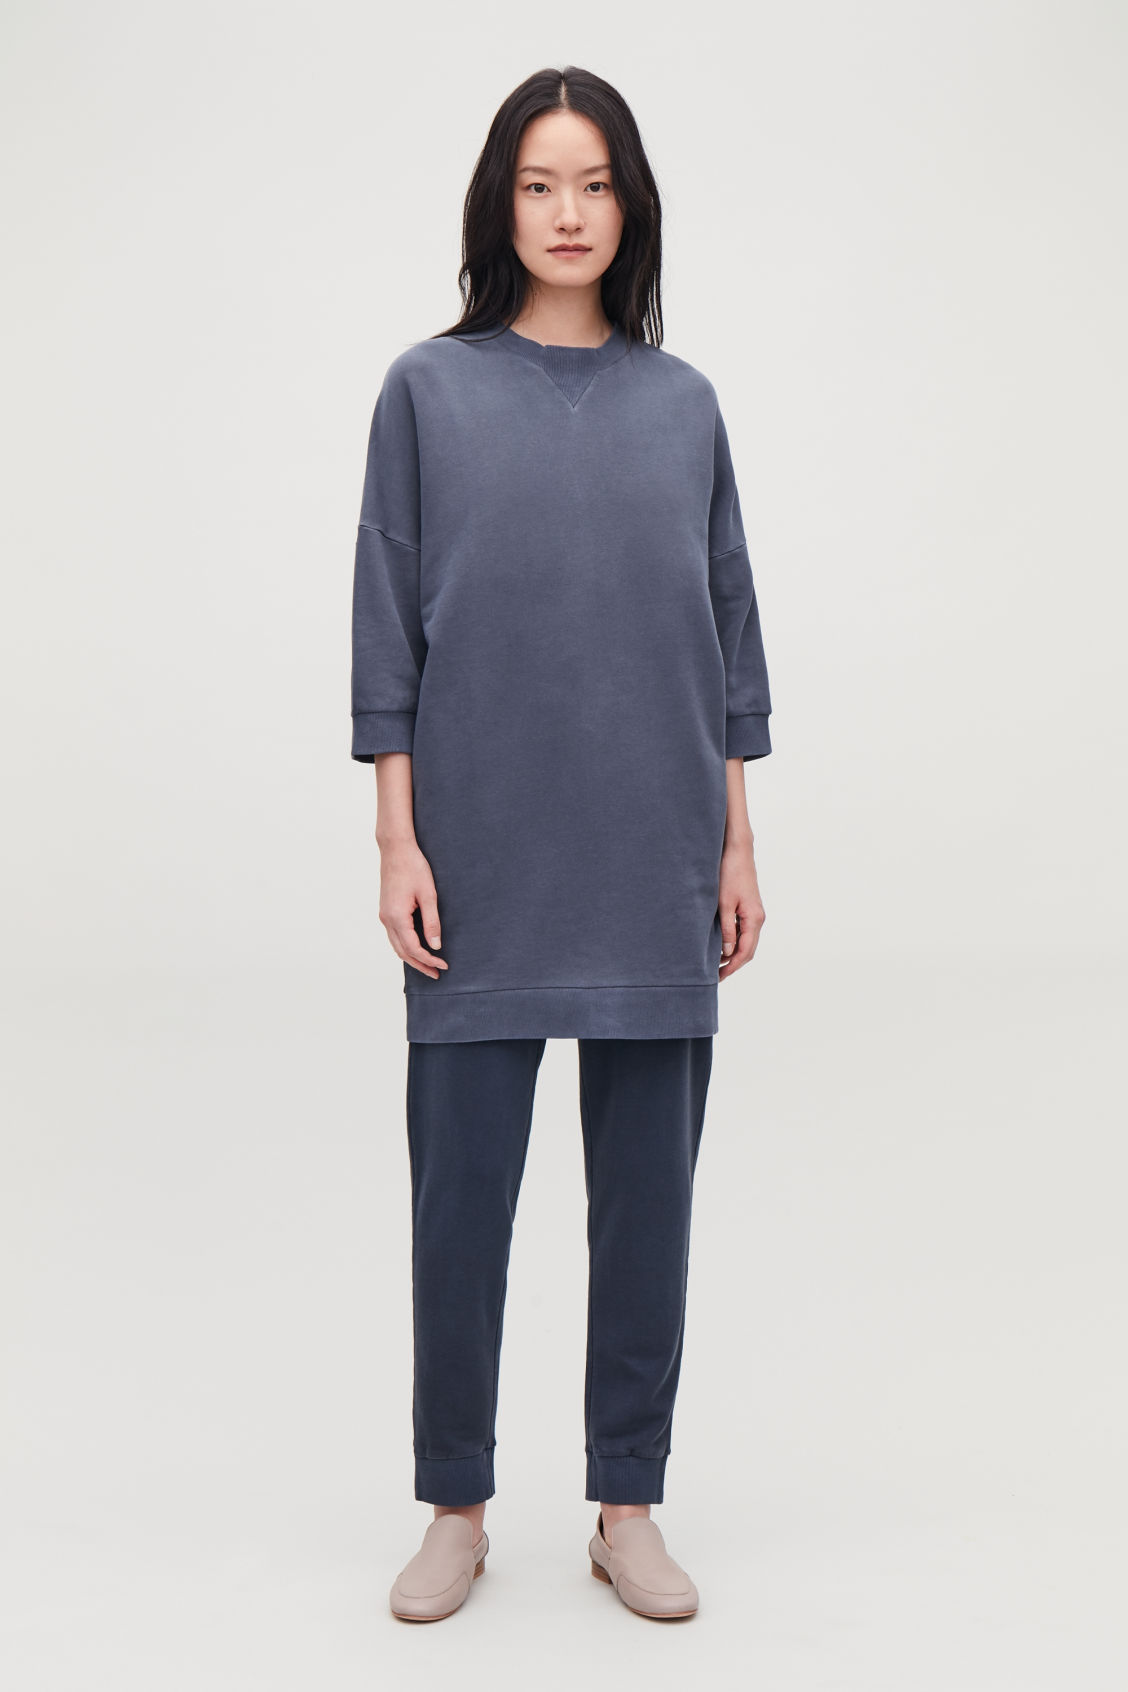 d8cab5f1a0 Model front image of Cos ¾-sleeved sweatshirt dress in blue